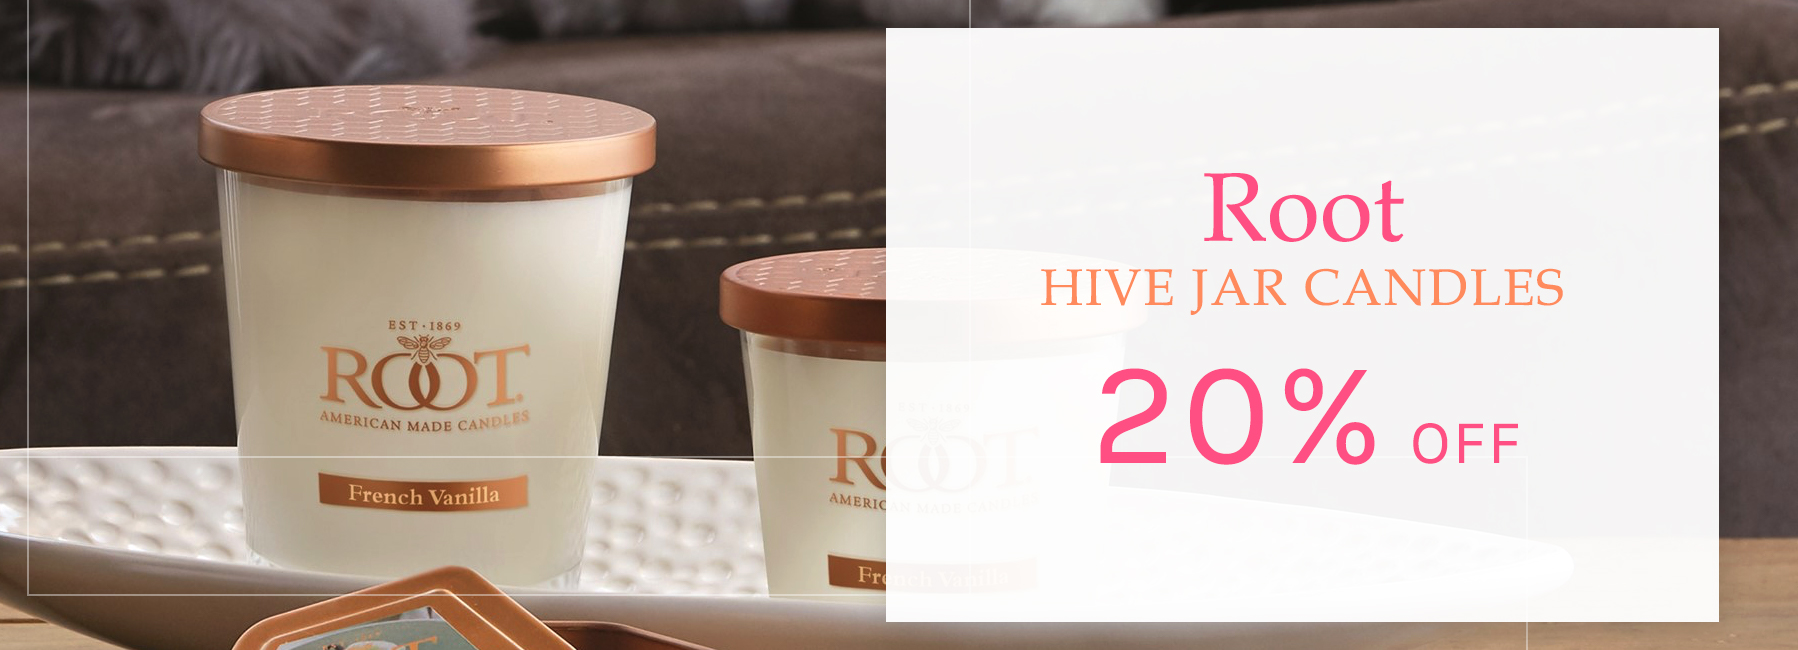 Root Candles - Hive Jar Candles - 20 Percent OFF